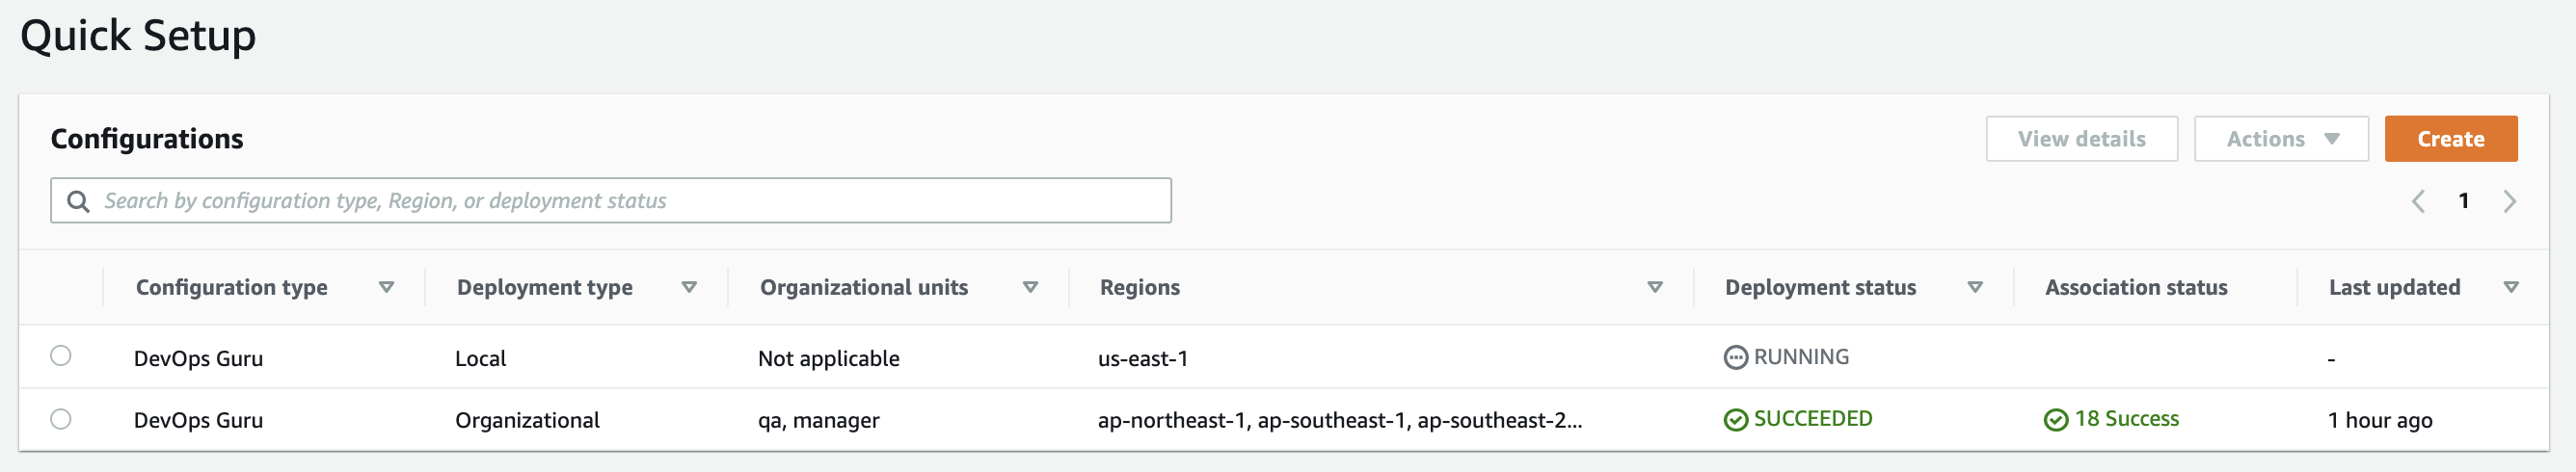 On the Quick Setup console, you can visualize a list of all the configurations you have created, including information about the configuration type, OUs, regions, and deployment status